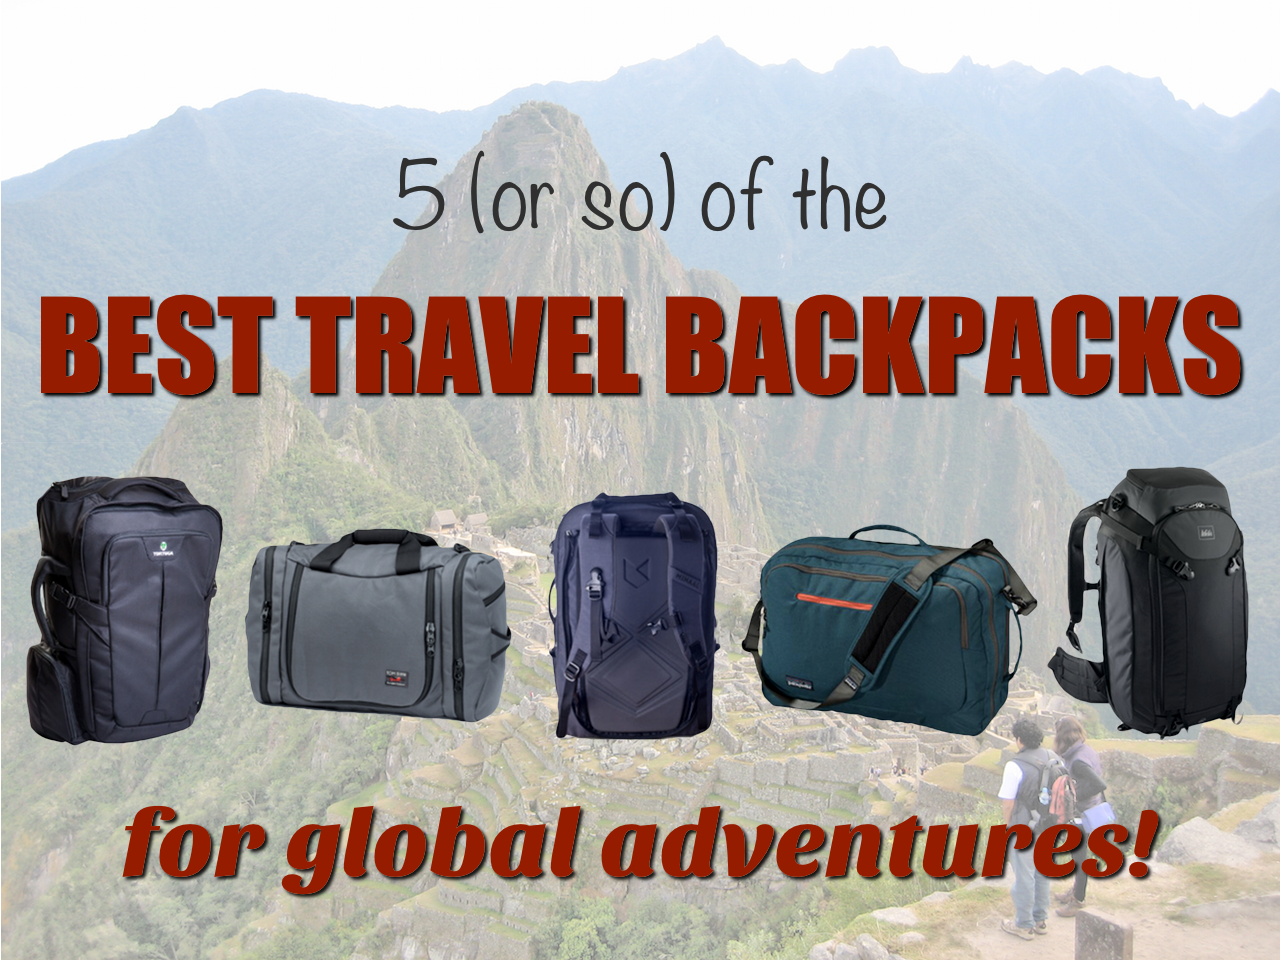 5 of the best travel backpacks for global